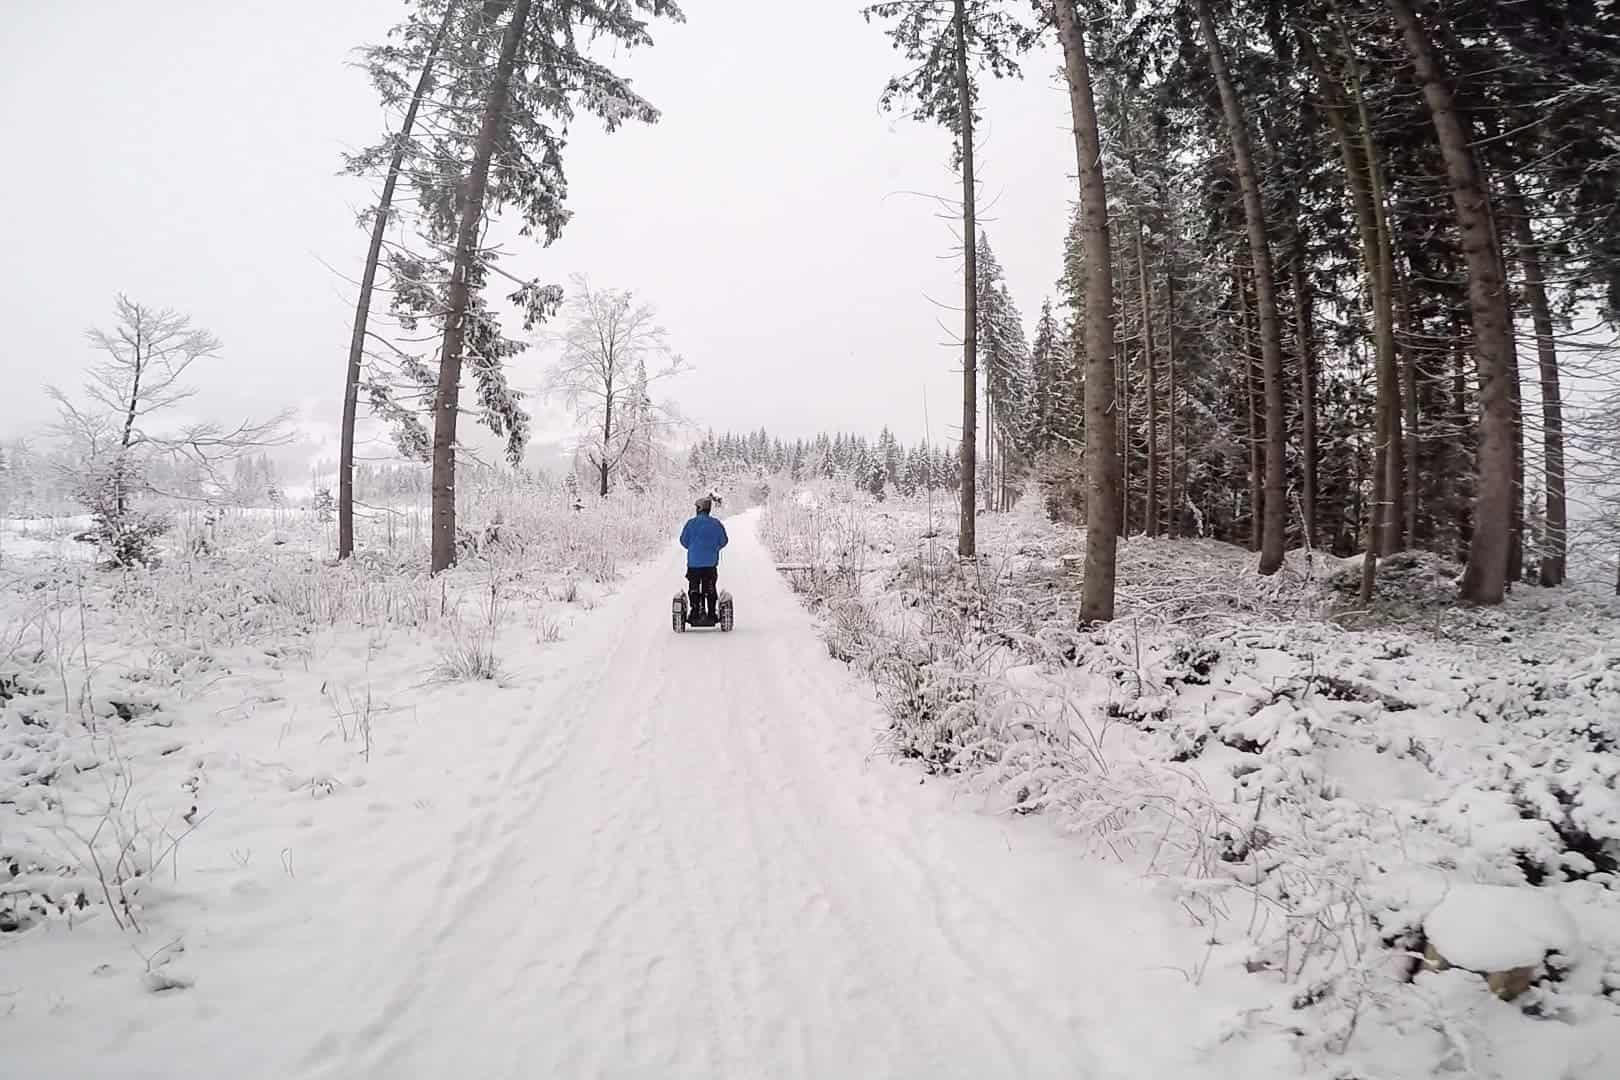 Winter Segway in Austria